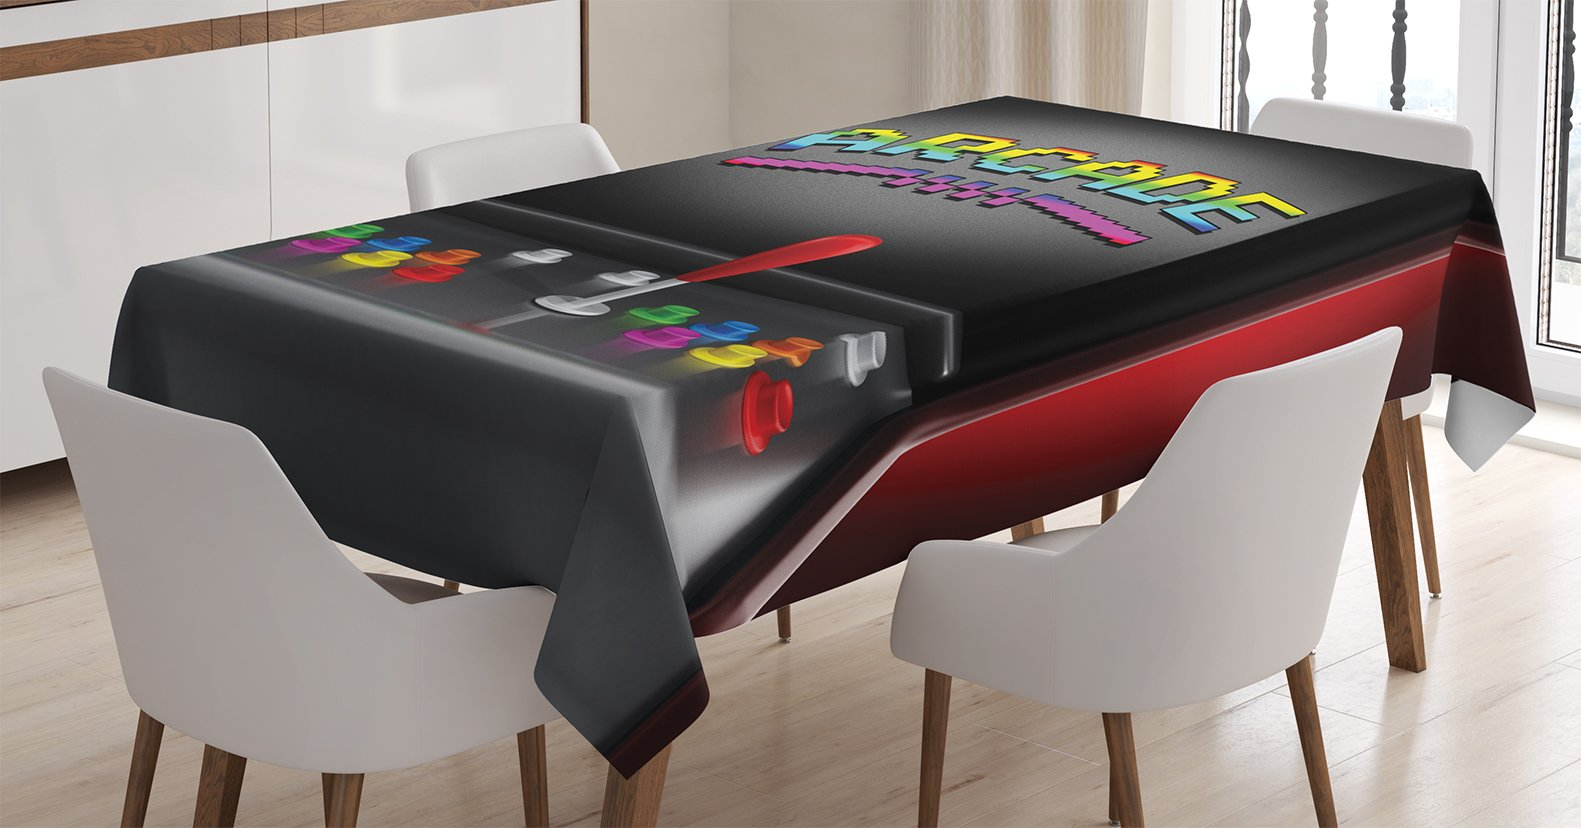 Ambesonne Video Games Tablecloth, Arcade Machine Retro Gaming Fun Joystick Buttons Vintage 80's 90's Electronic, Dining Room Kitchen Rectangular Table Cover, 60 X 84 inches